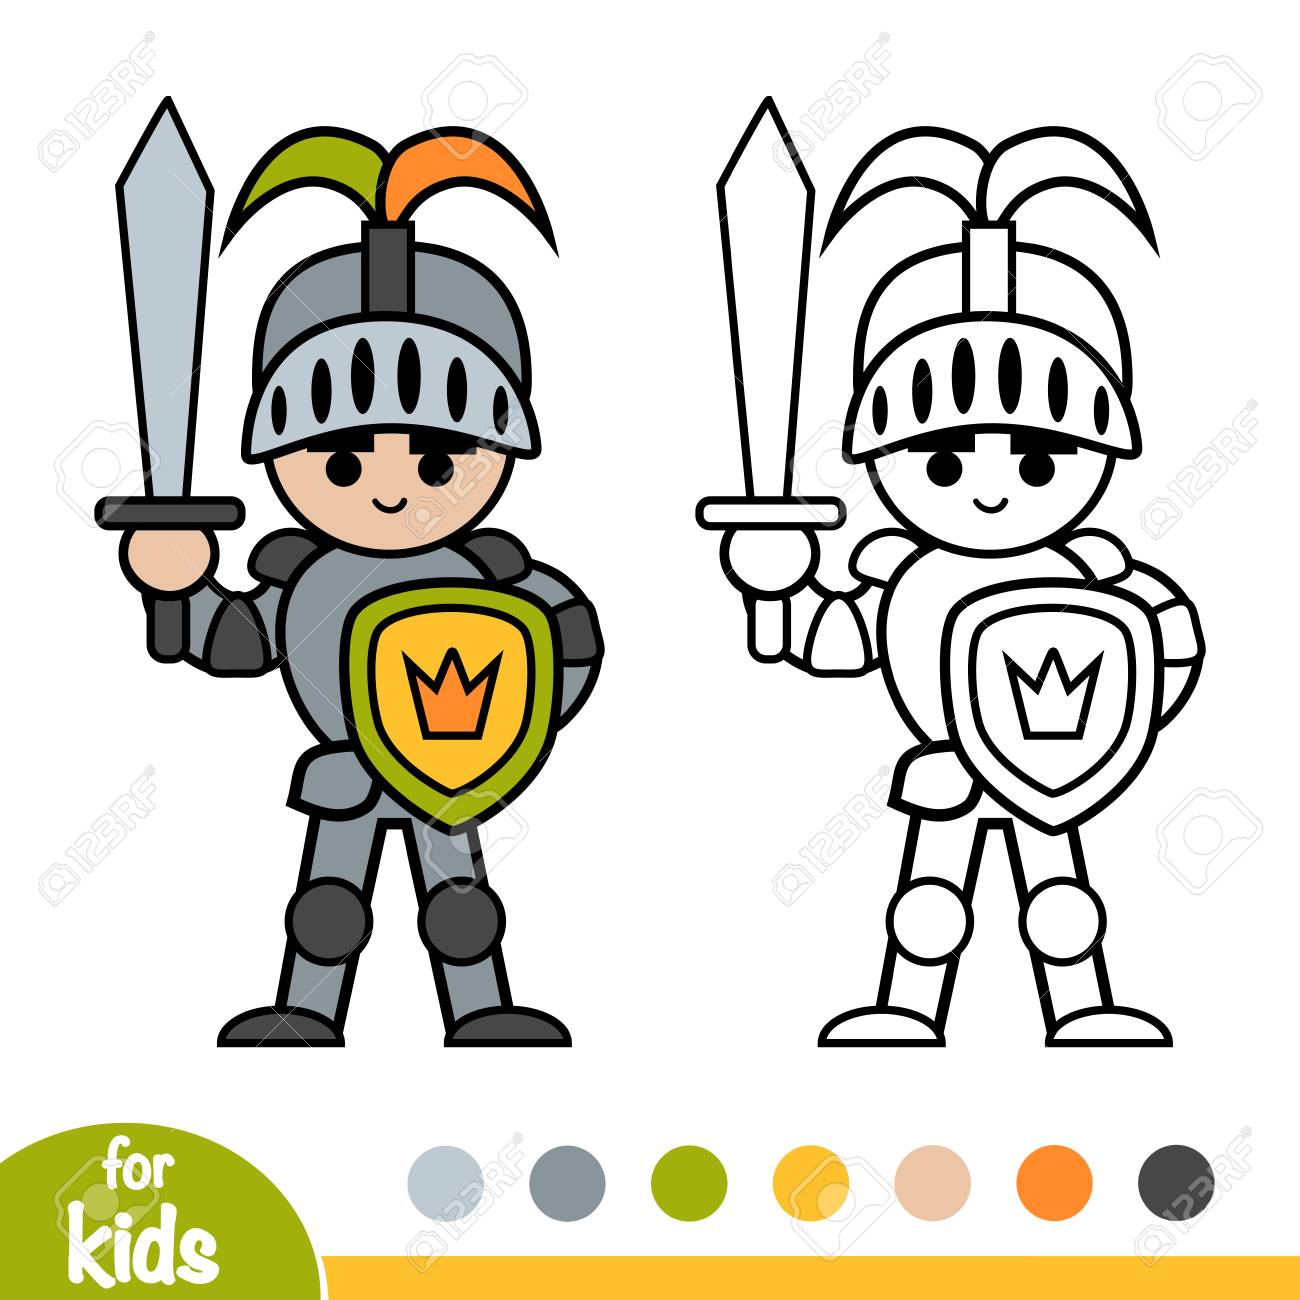 Coloring book for children, Knight